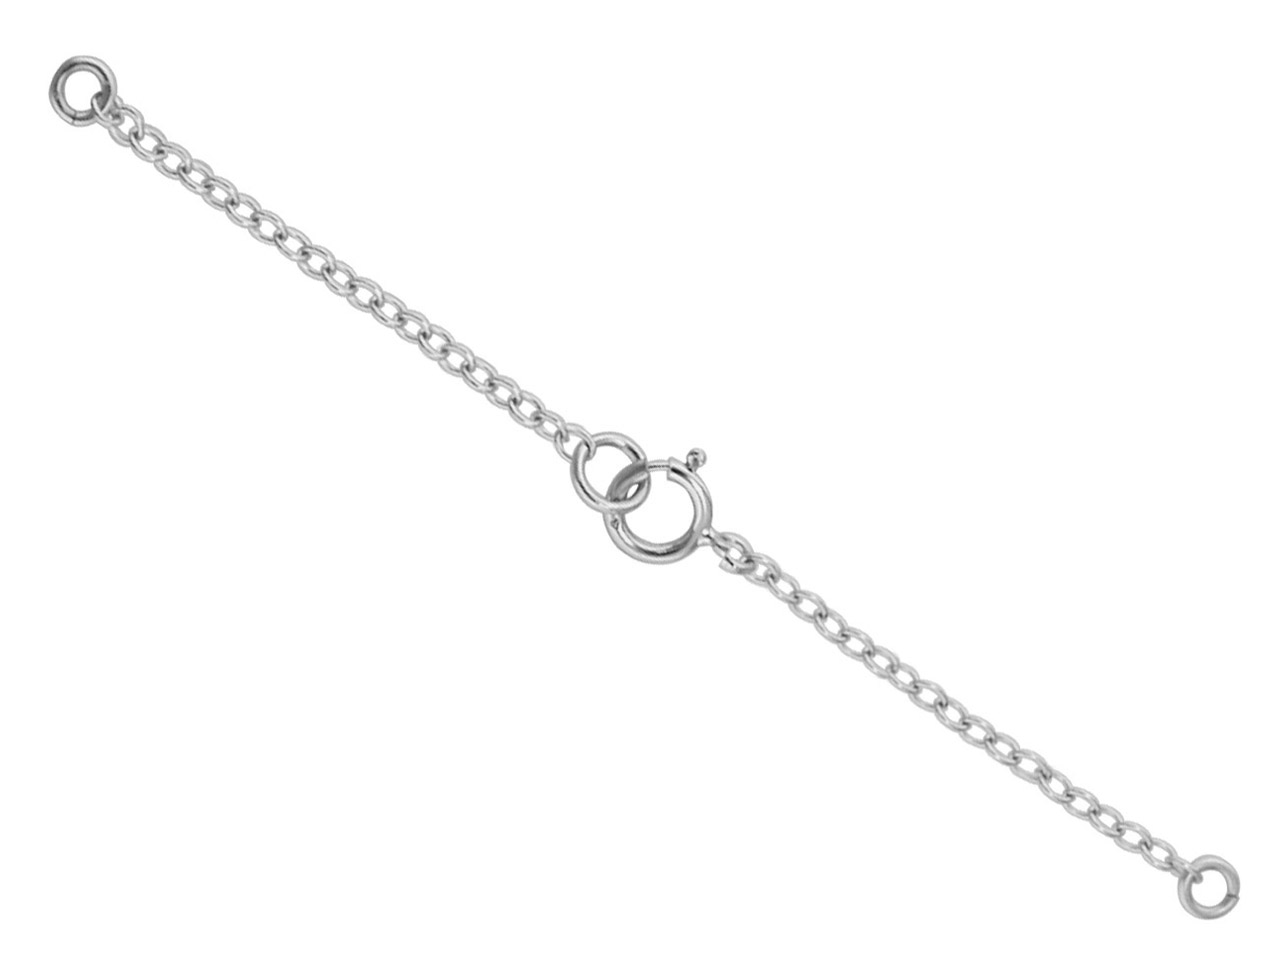 18ct White Gold 1.7mm Trace Safety Chain For Necklace With Bolt Ring  6.5cm/2.6